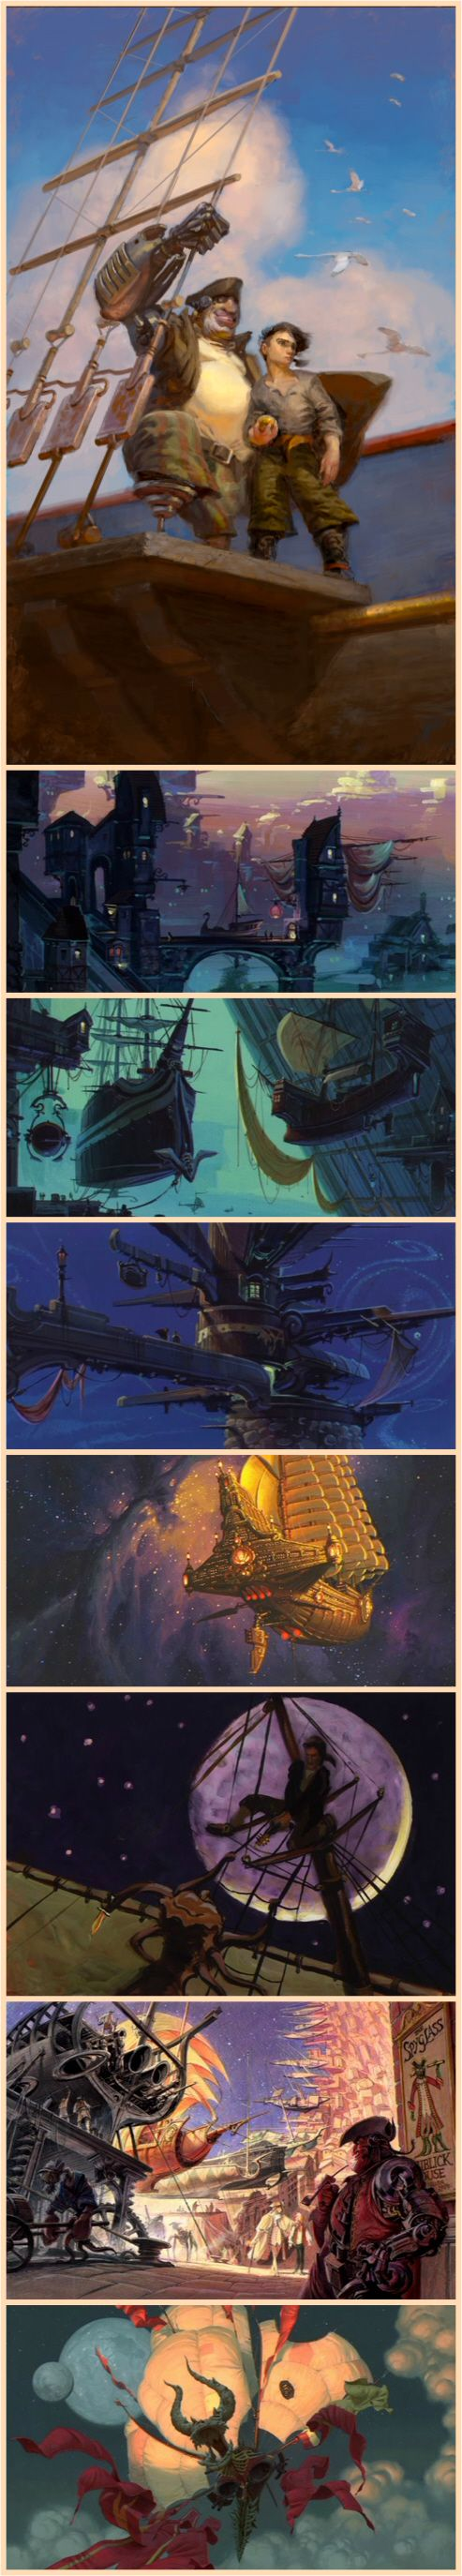 Treasure Planet concept art.